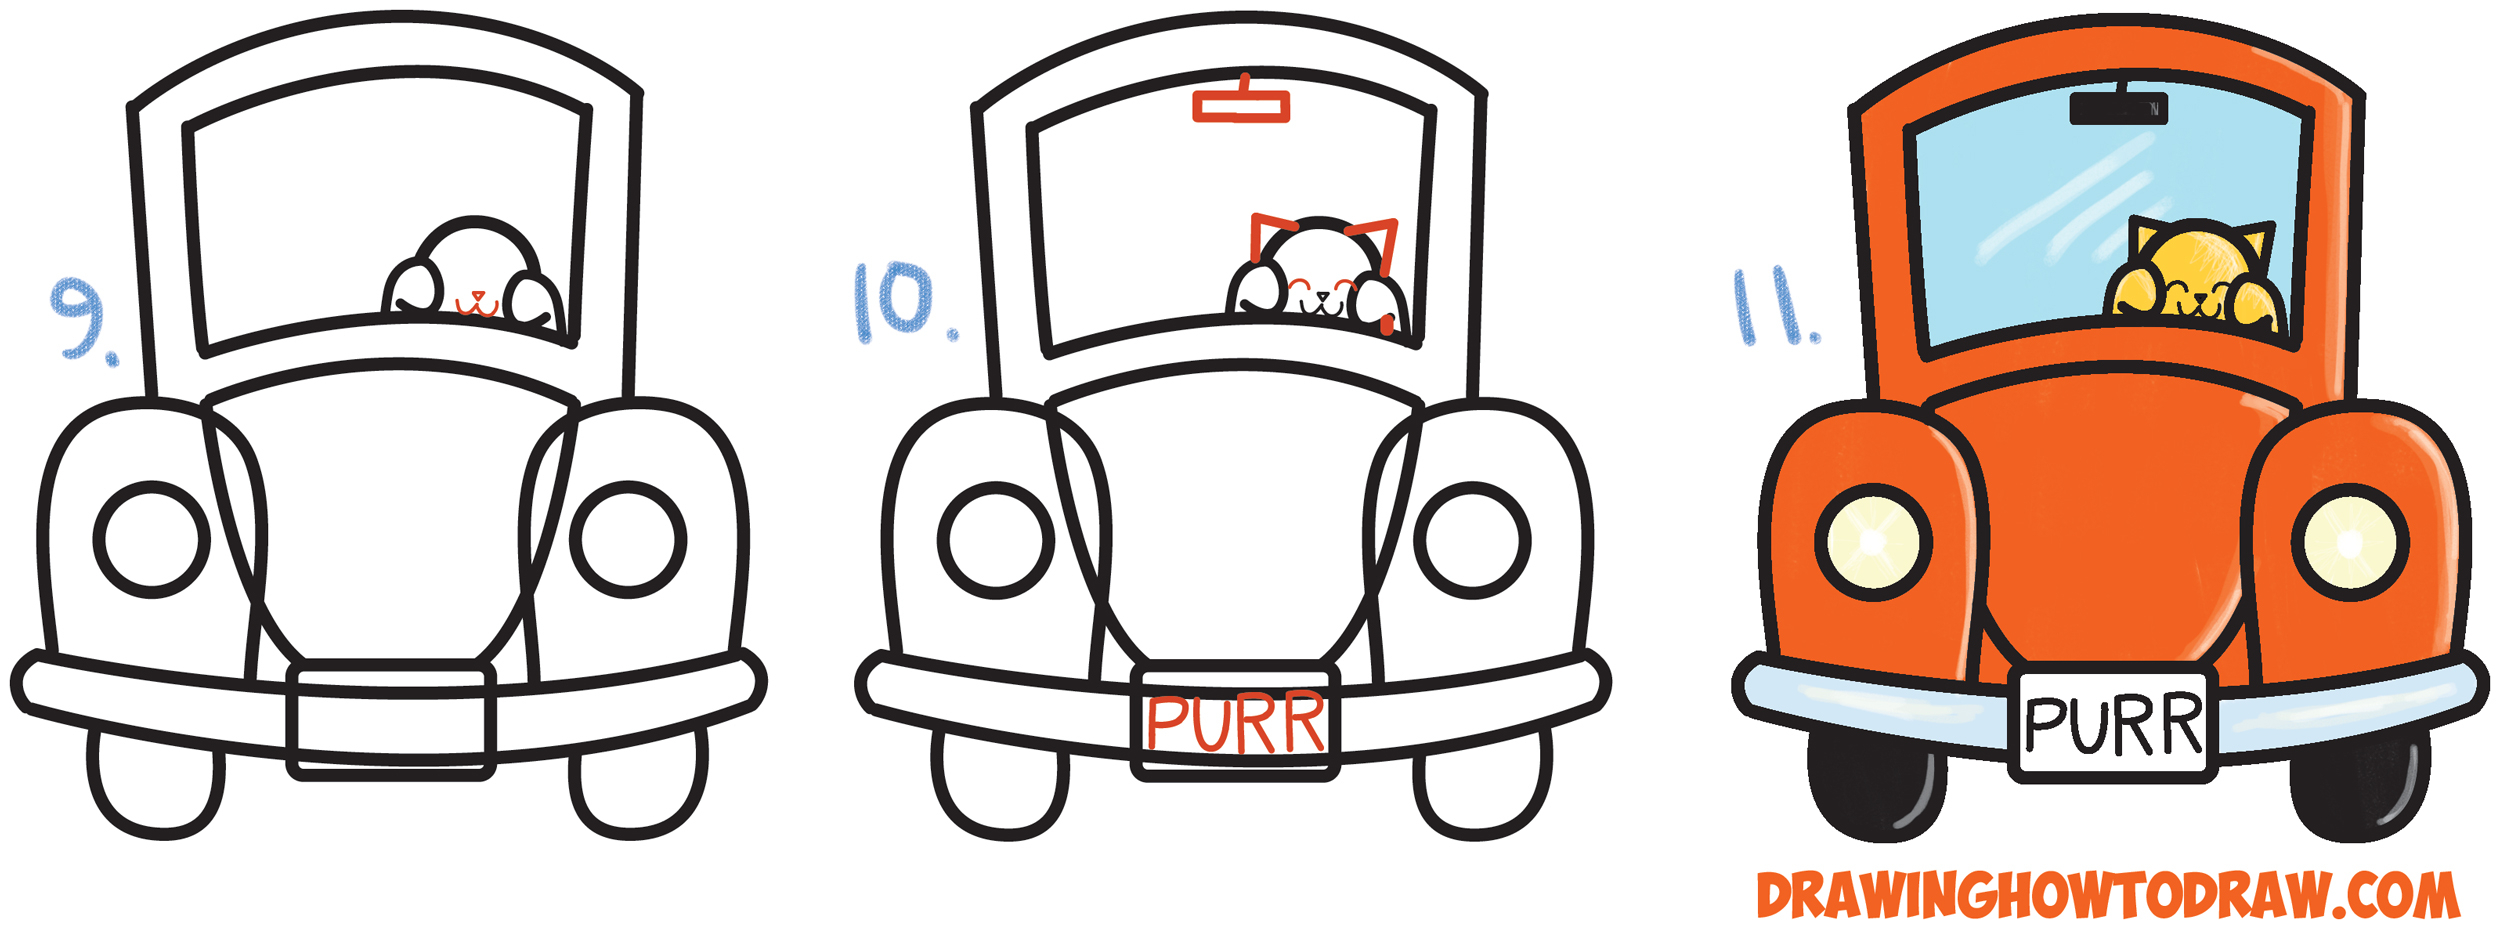 2500x929 Images Of Cars In Cartoon Easy To Draw How To Draw Cute Cartoon